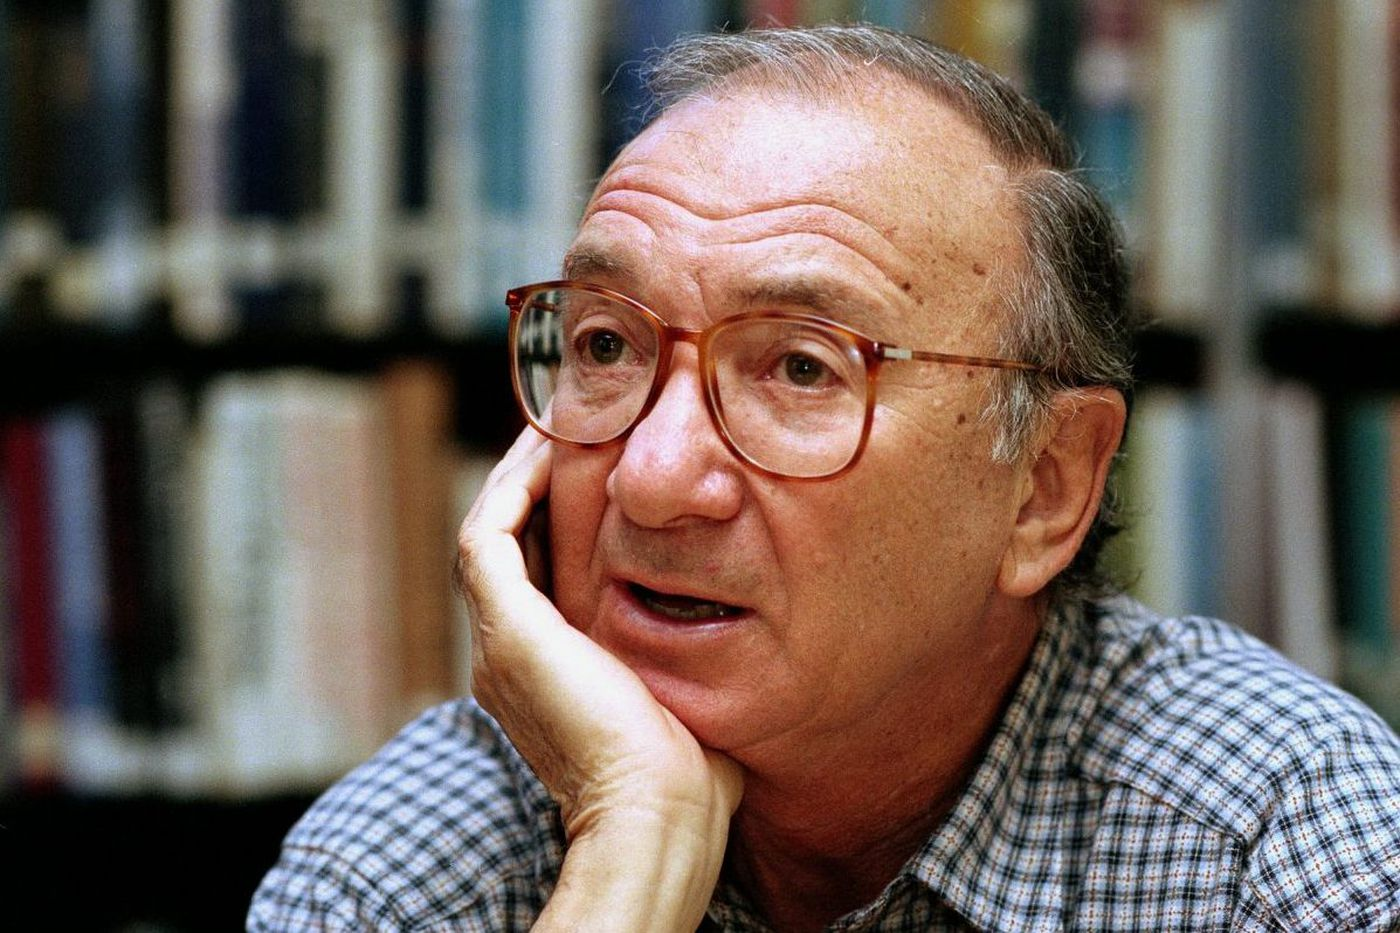 Neil Simon, 91, prolific comedic playwright, is dead